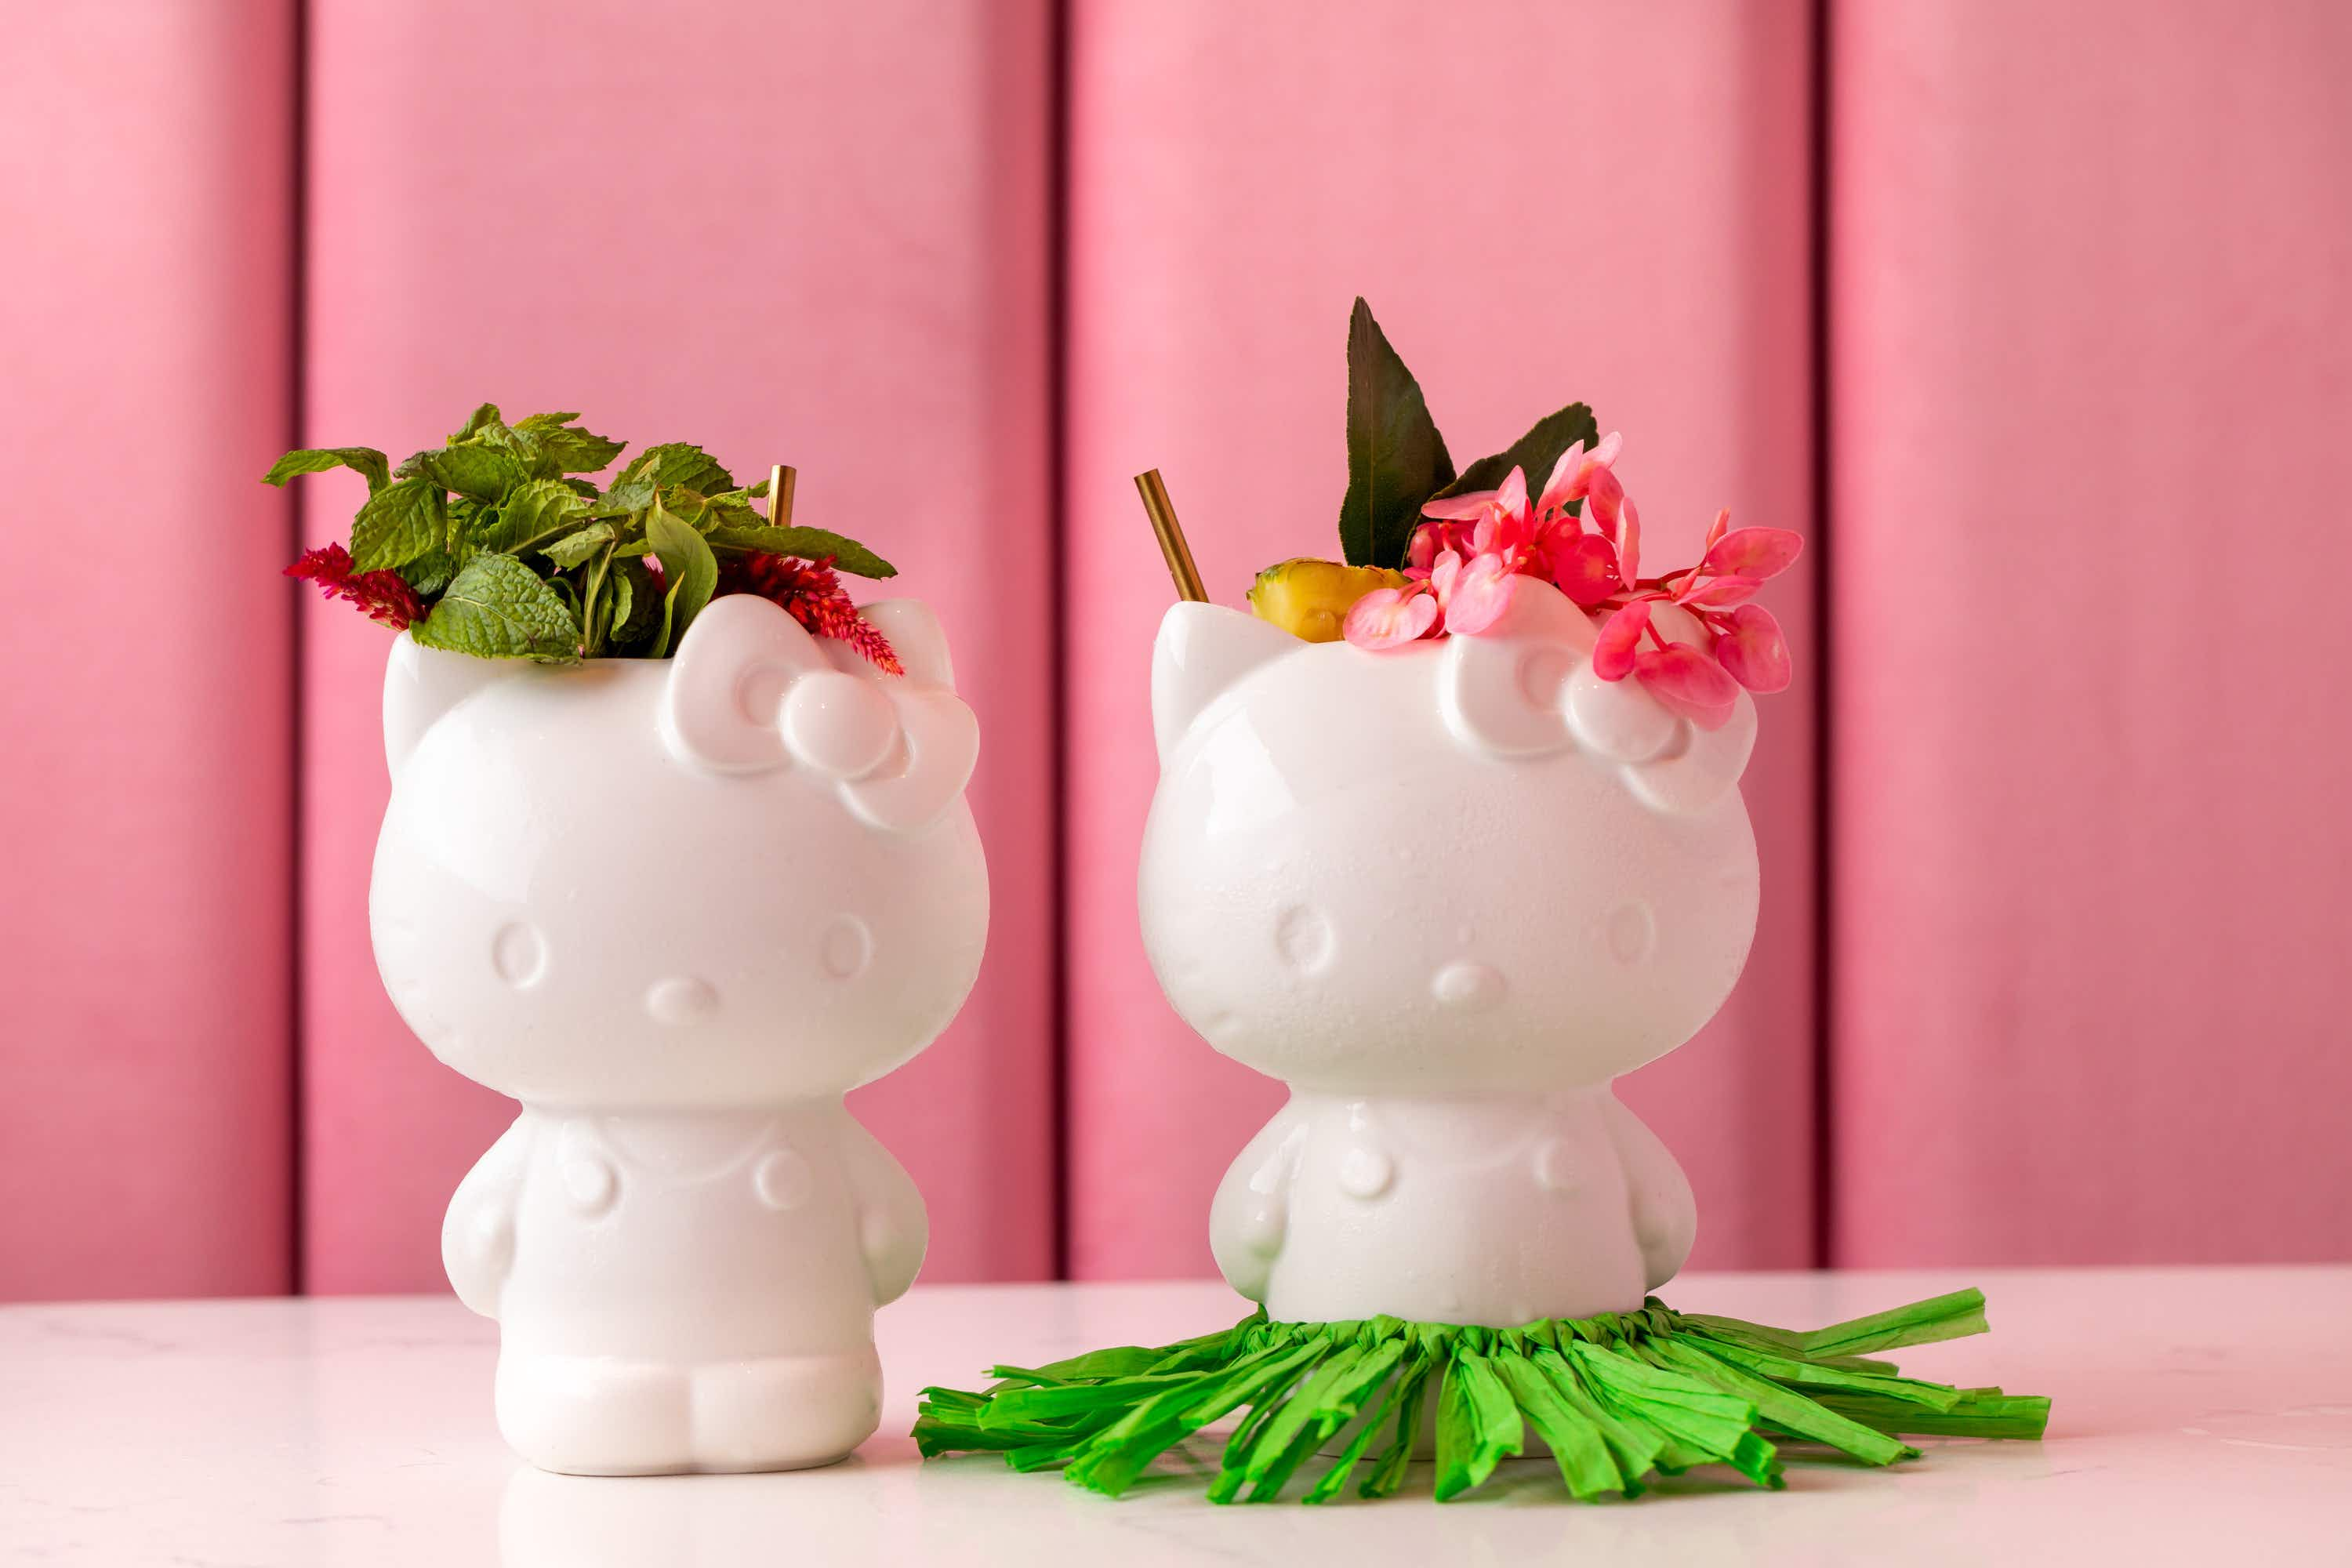 Sip an adorable Hello Kitty cocktail at this new café in California